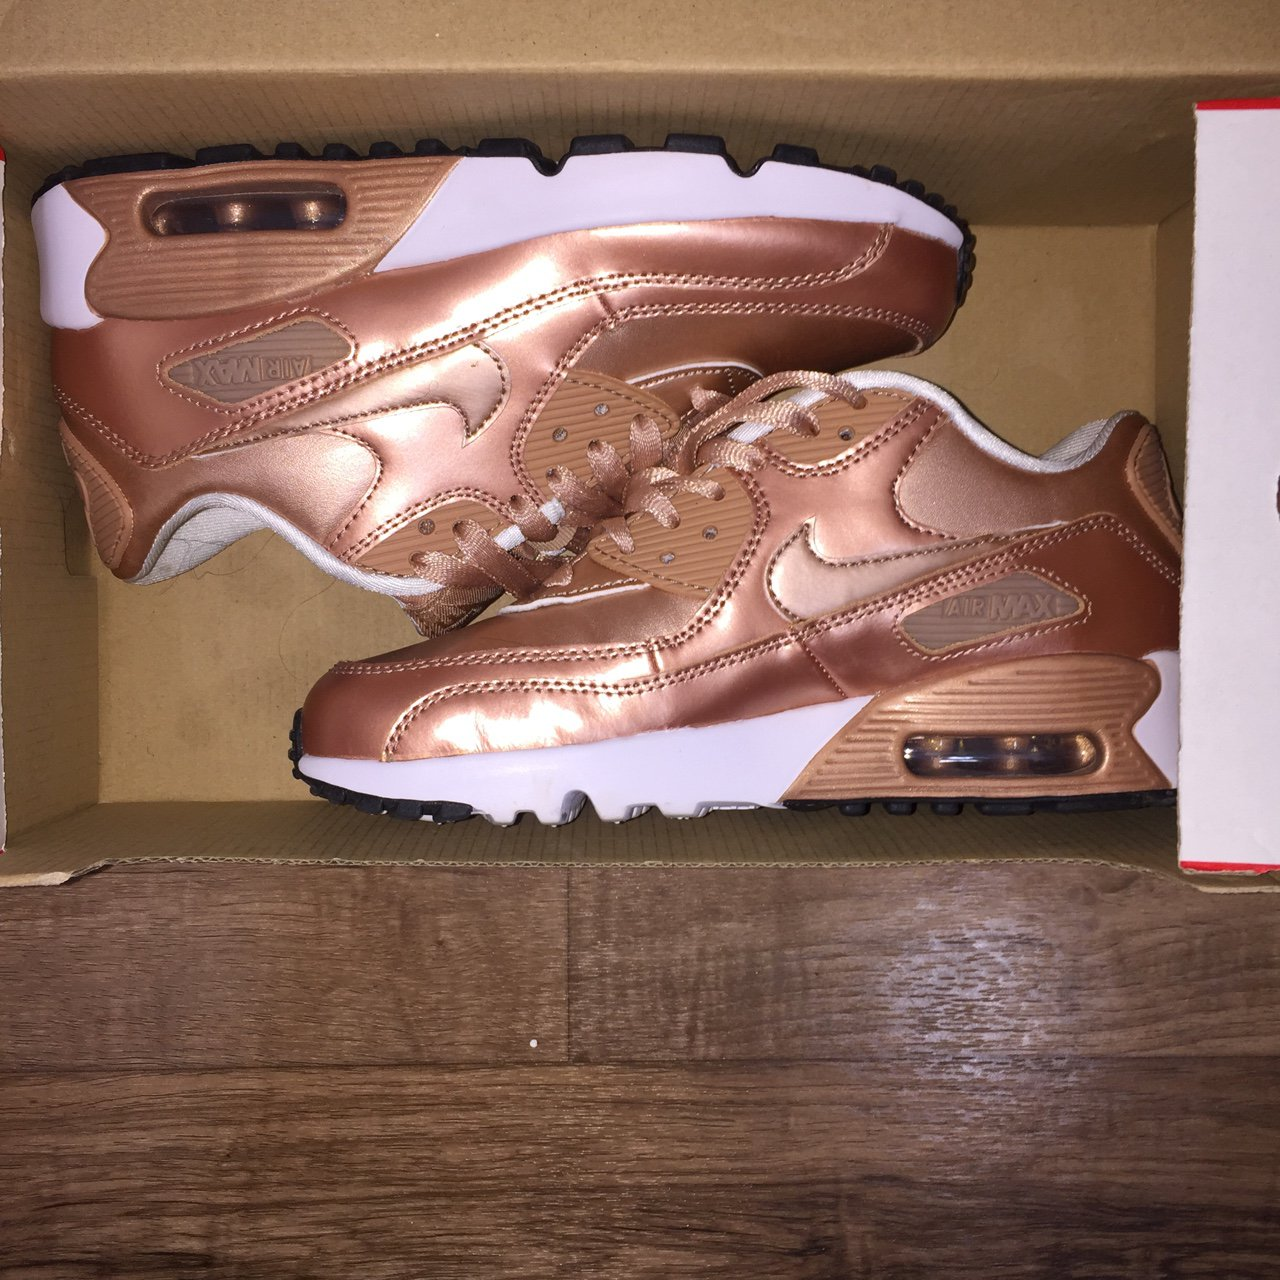 36155a61d03c74  lynnclothing. 11 months ago. United States. Rose Gold Nike Air Max 90s